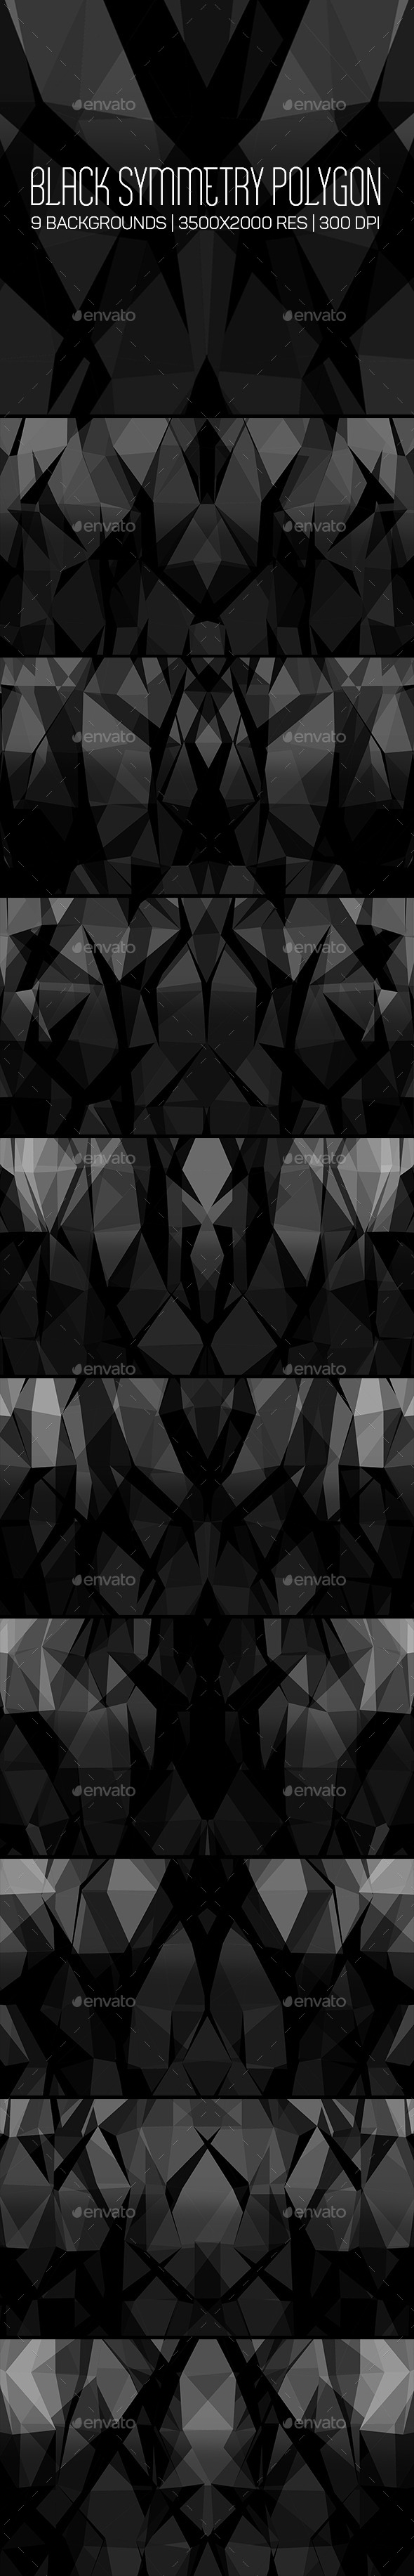 GraphicRiver Black Symmetry Polygon Backgrounds 10598731